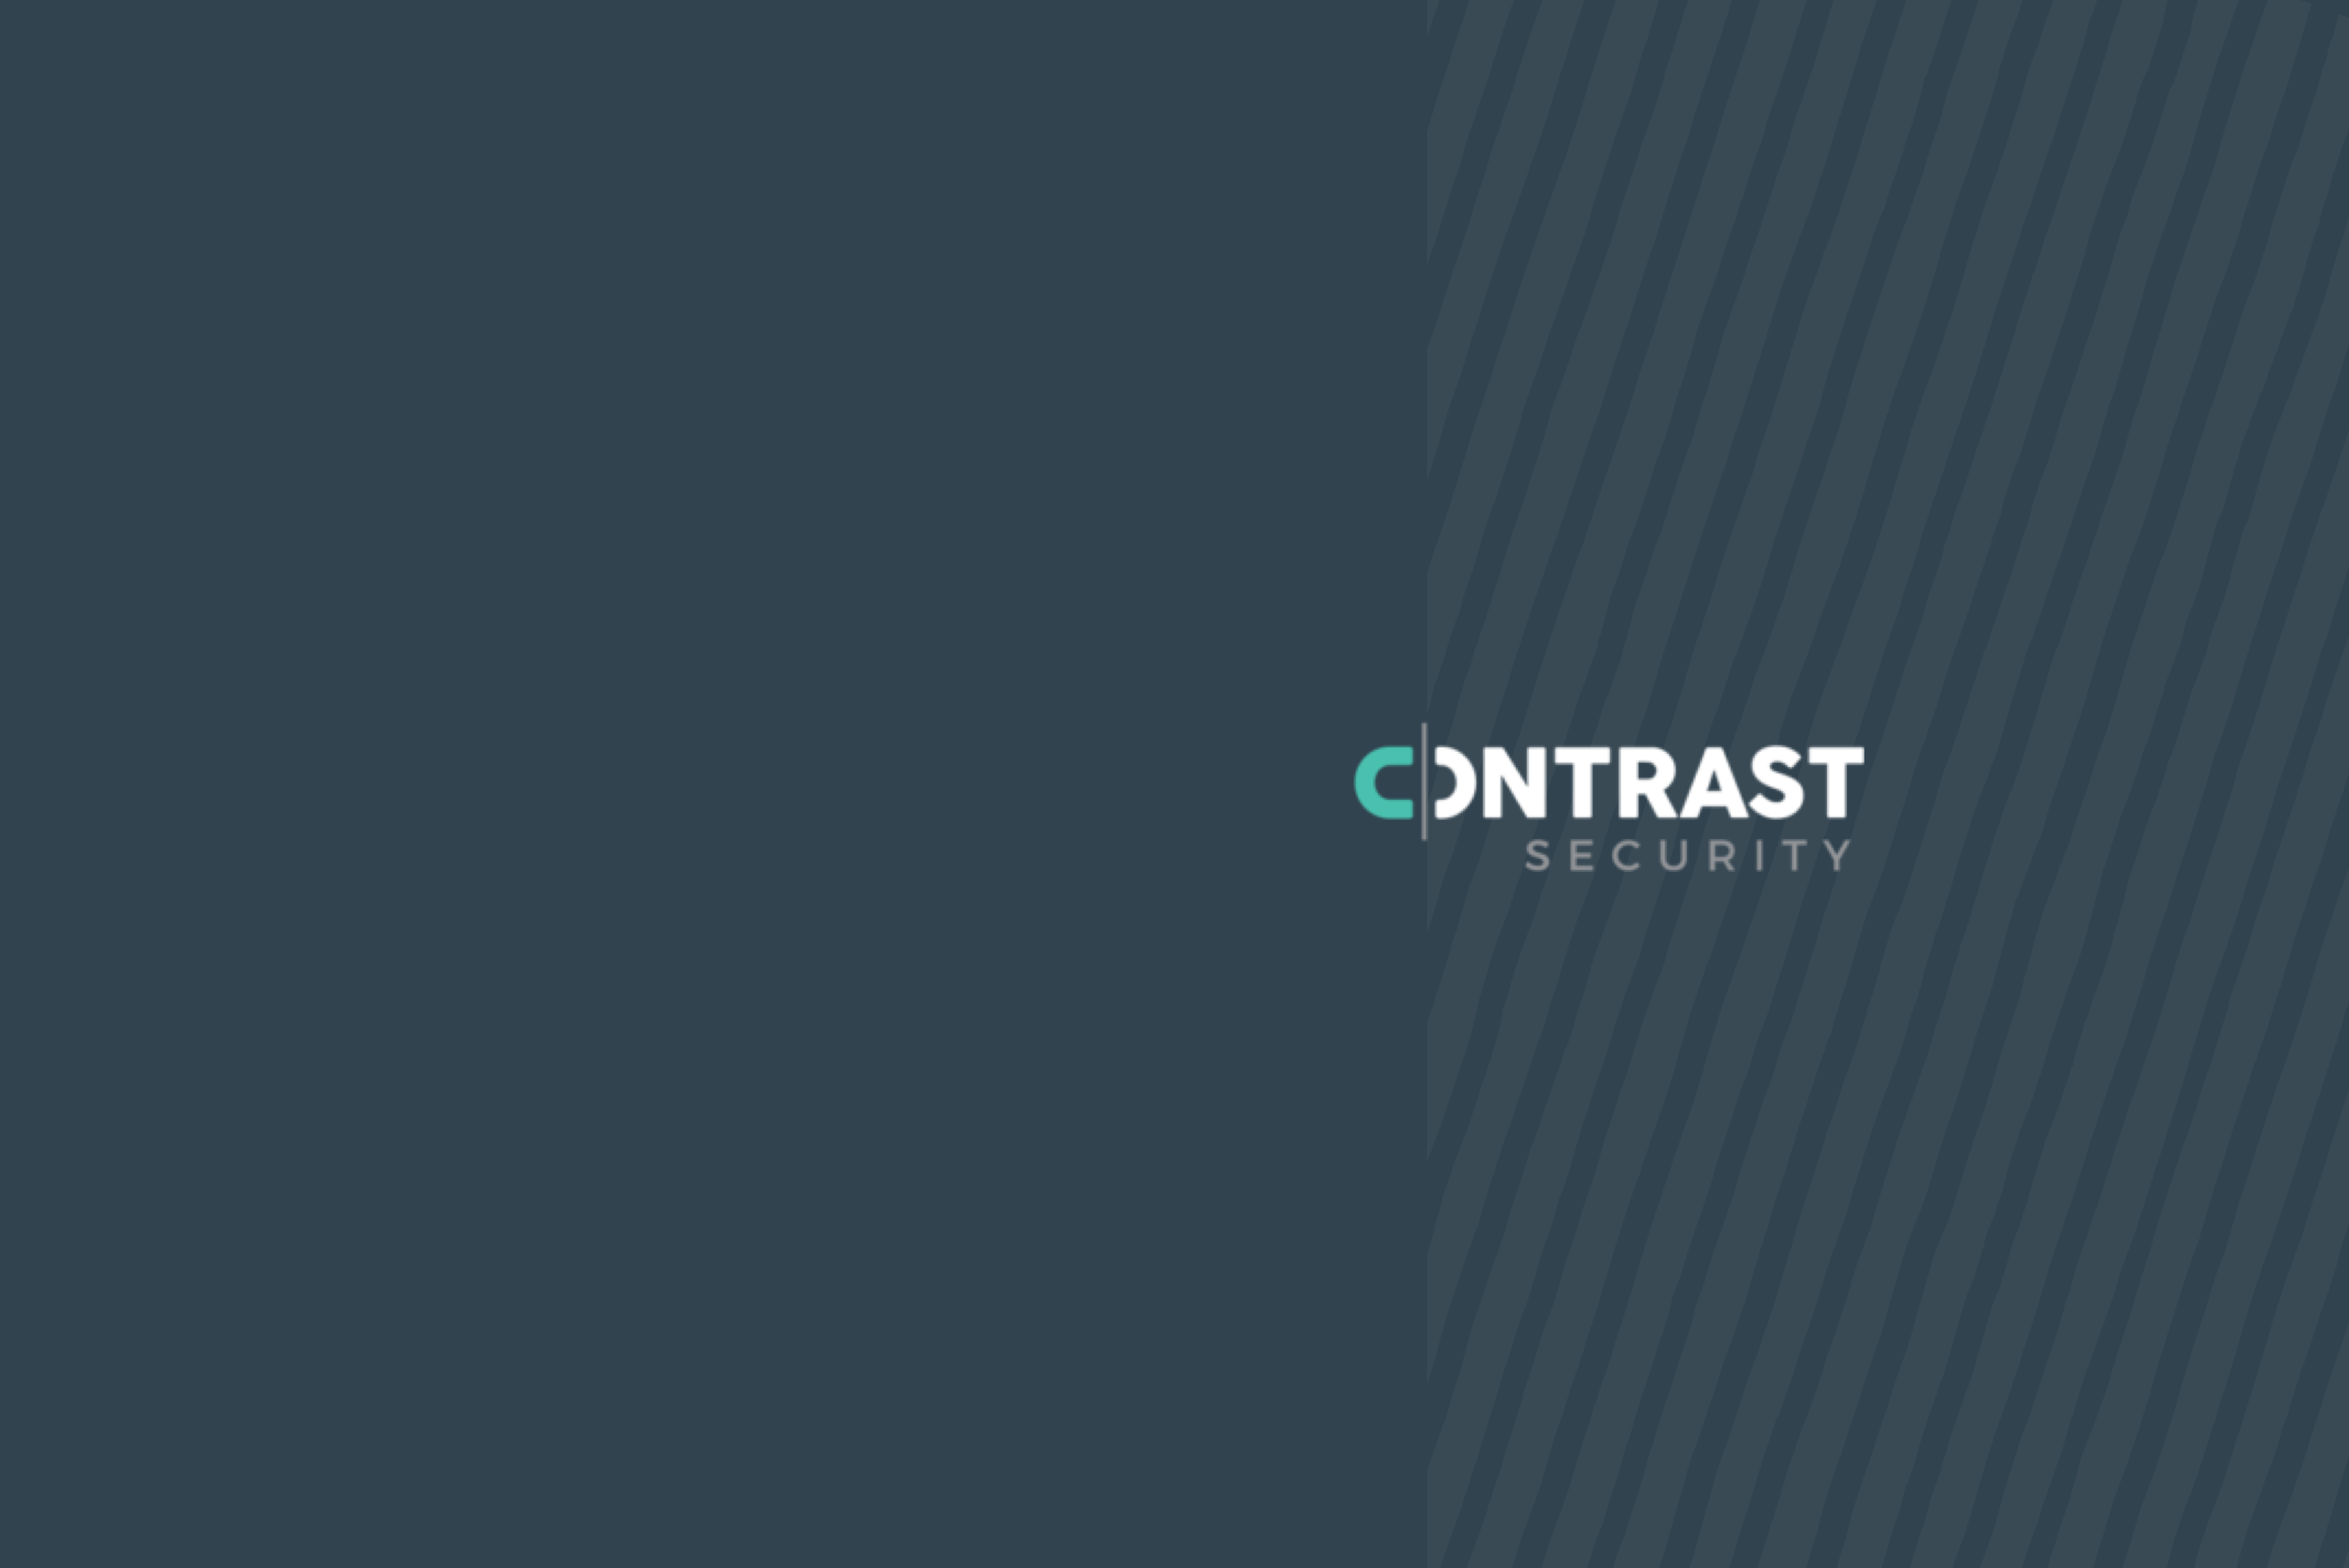 Contrast Security Triples Monthly Social Media Clicks & Interactions